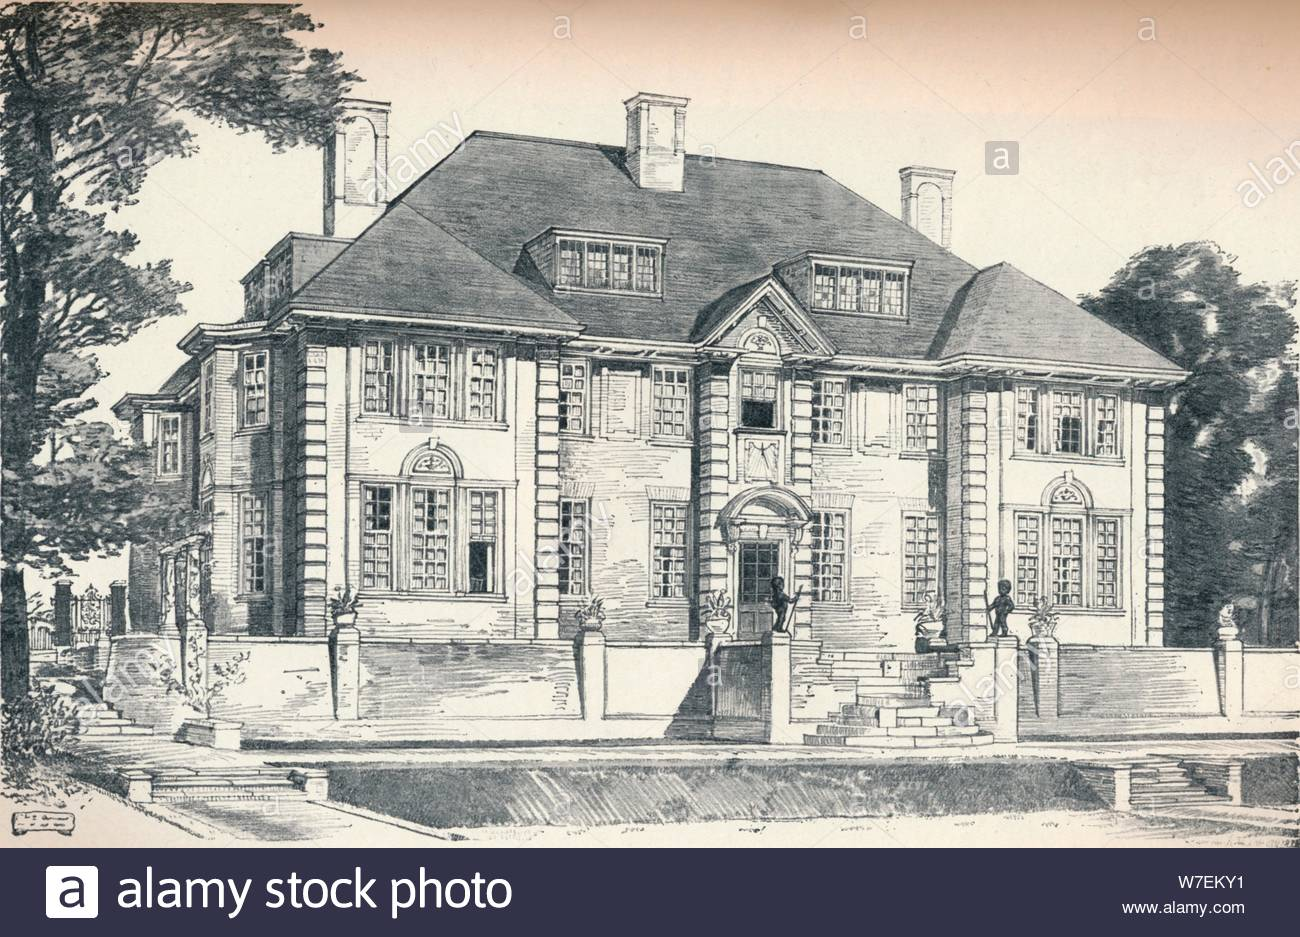 design for a house at hampstead by c h b quennell c1913 artist unknown W7EKY1